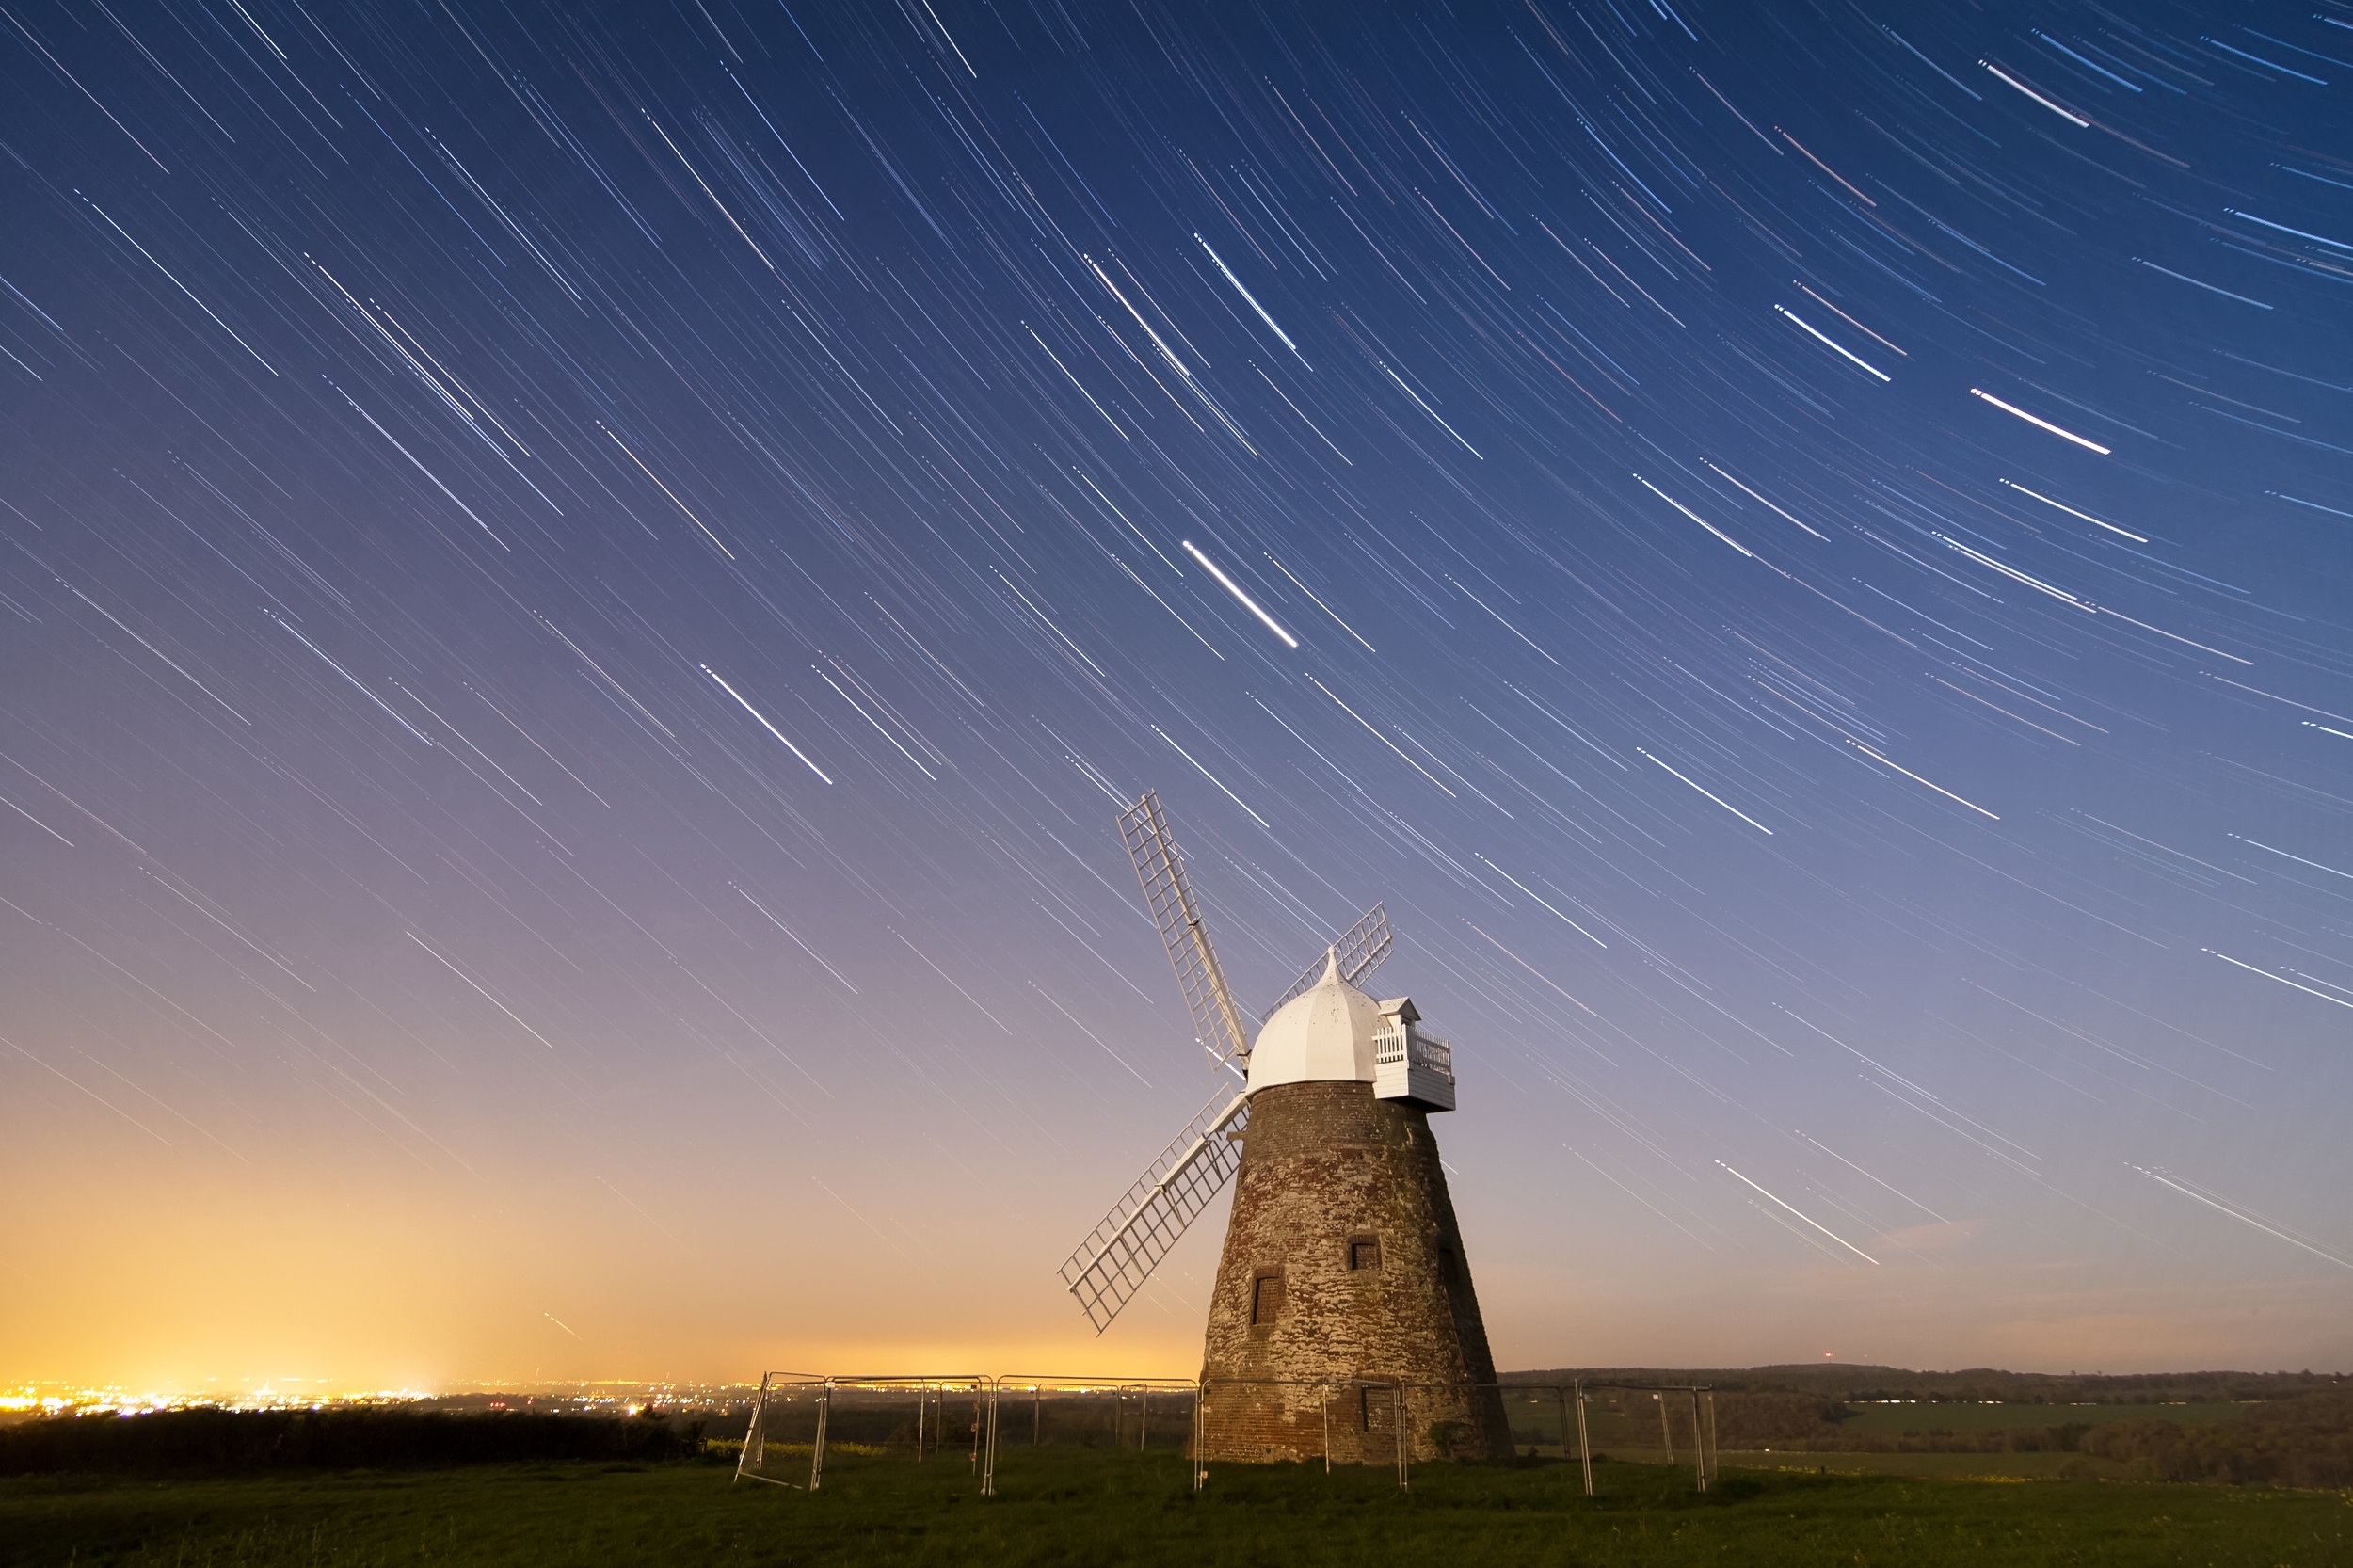 """The shutter stop controls the length of time the light sensor is exposed to the light. The photograph above allows for a long exposure creating the streaking star effect in the sky above the windmill. Since the windmill is stationary the light, although over a prolonged period of time, is emitted and recorded from the same space. In contrast, as the Earth rotates, the stars in the sky move in relation to the camera, thus changing position of the light source along the direction of the Earth's rotation. Image Attribution: """" While the sky whirls away """" by  sagesolar  is licensed under  CC BY 2.0"""